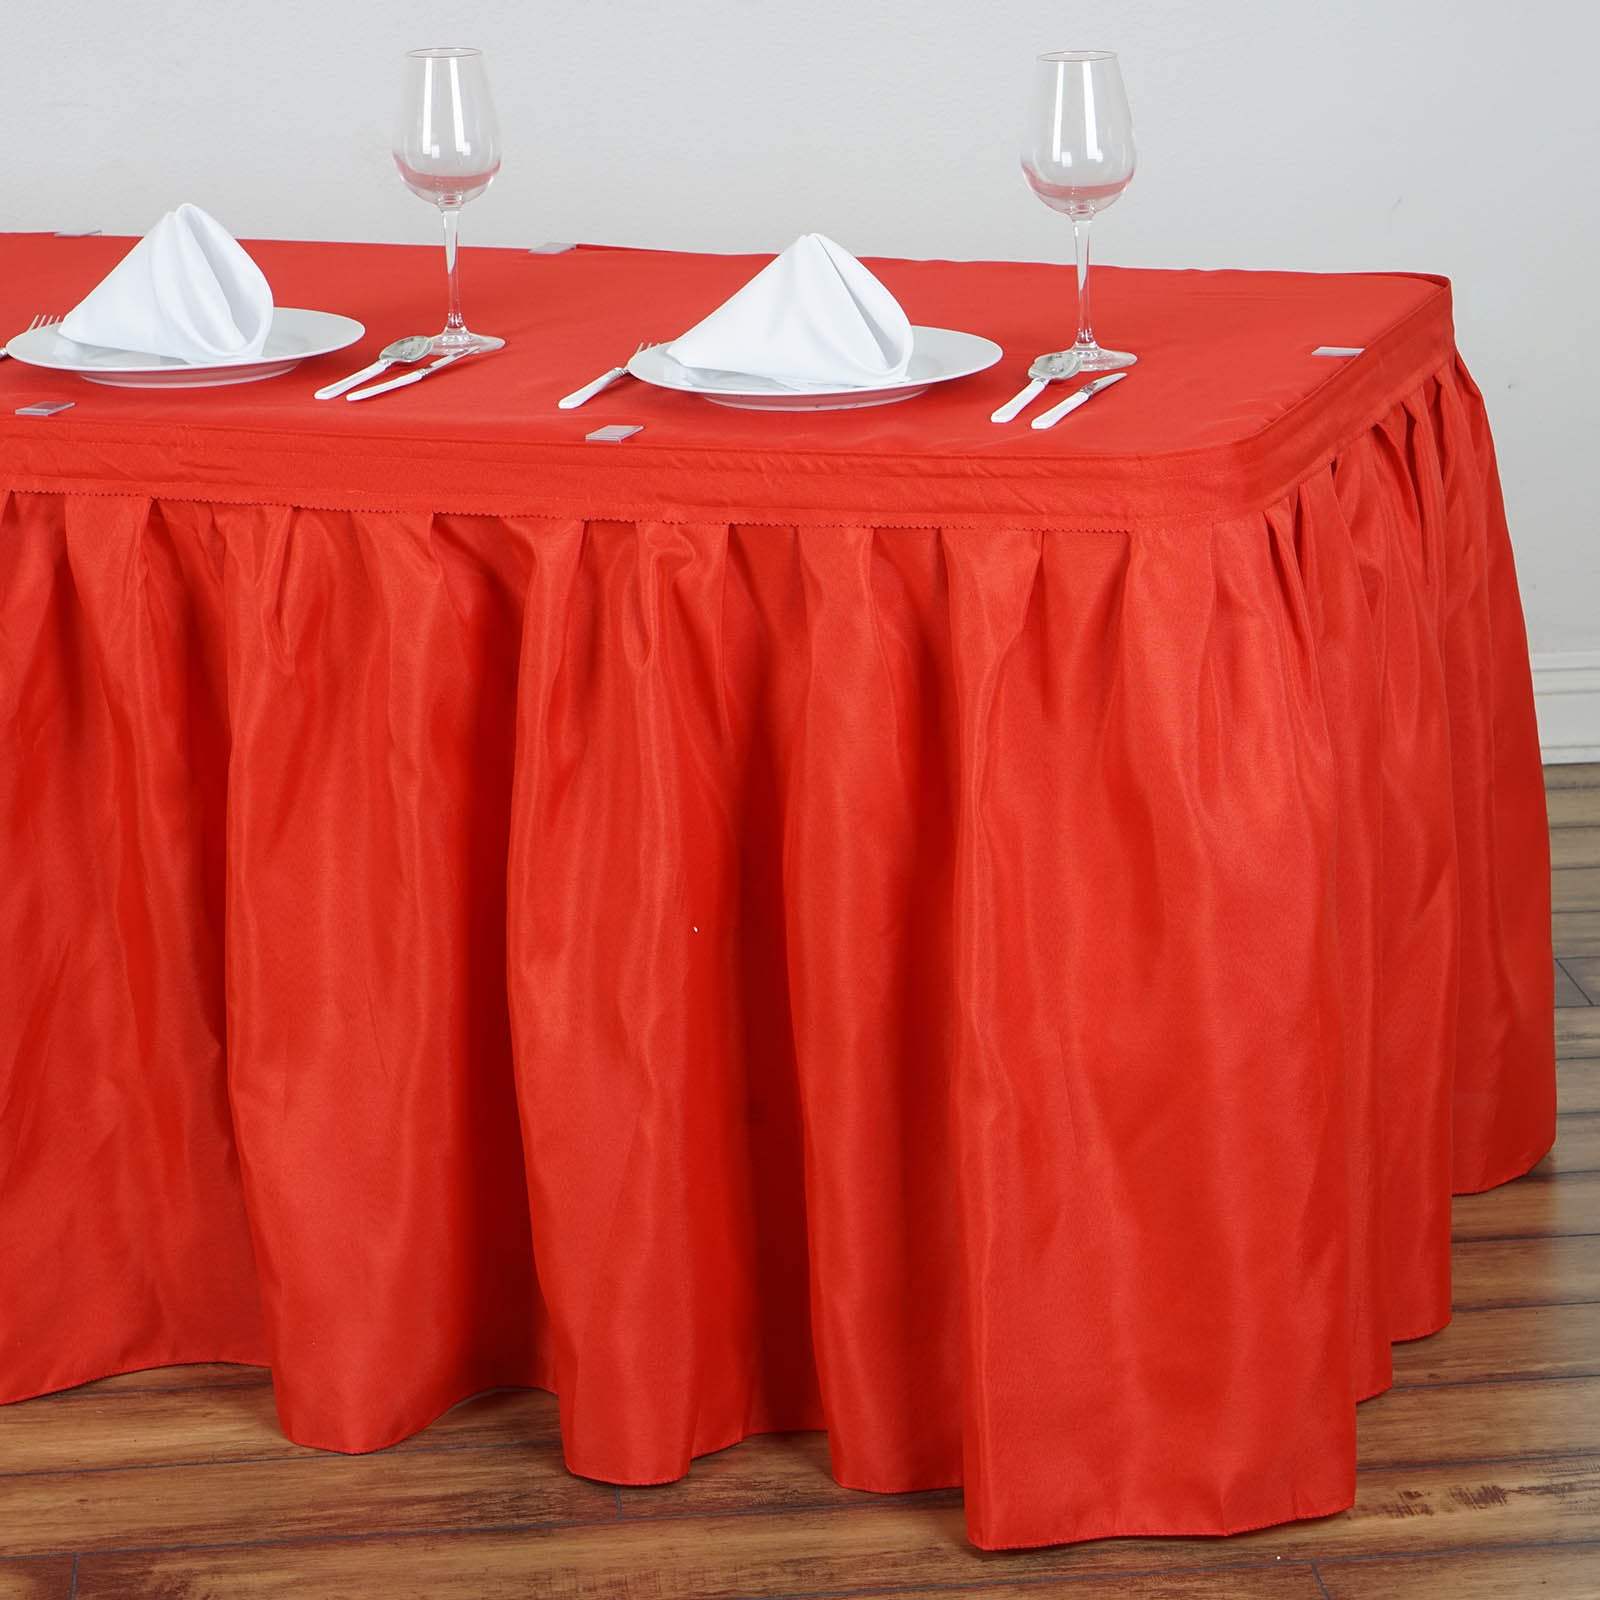 8e9c5f600f 14FT Red Pleated Polyester Table Skirt | eFavorMart